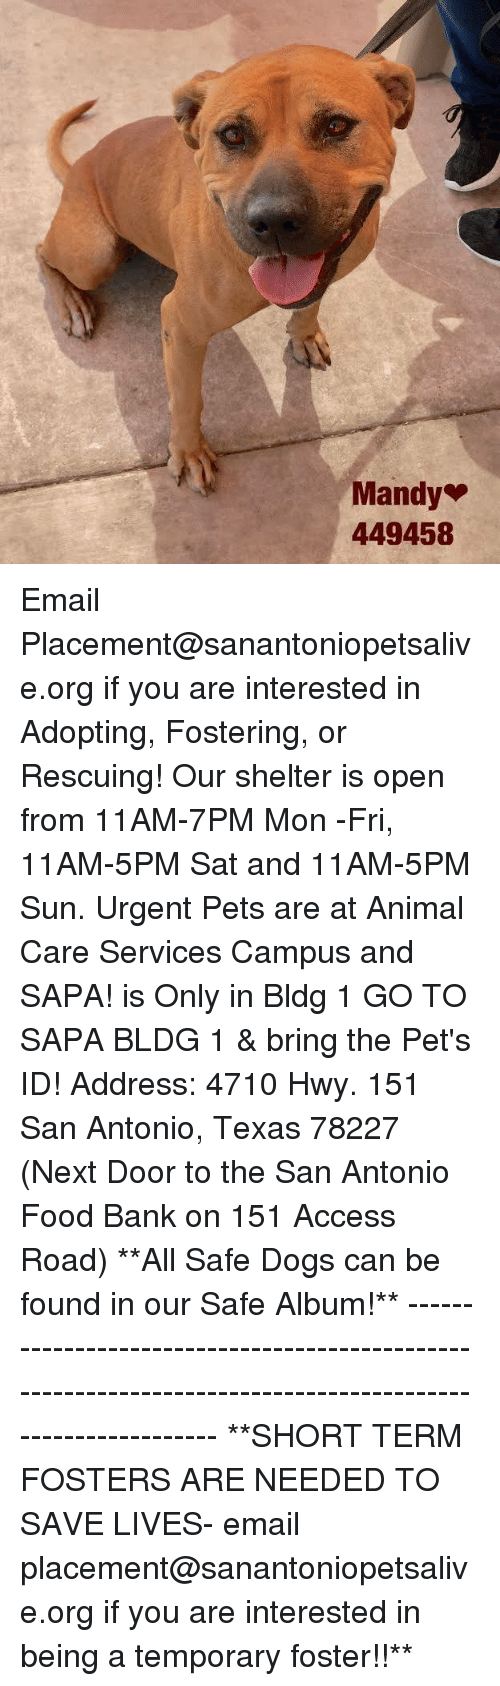 shortness: Mandy  449458 Email Placement@sanantoniopetsalive.org if you are interested in Adopting, Fostering, or Rescuing!  Our shelter is open from 11AM-7PM Mon -Fri, 11AM-5PM Sat and 11AM-5PM Sun.  Urgent Pets are at Animal Care Services Campus and SAPA! is Only in Bldg 1 GO TO SAPA BLDG 1 & bring the Pet's ID! Address: 4710 Hwy. 151 San Antonio, Texas 78227 (Next Door to the San Antonio Food Bank on 151 Access Road)  **All Safe Dogs can be found in our Safe Album!** ---------------------------------------------------------------------------------------------------------- **SHORT TERM FOSTERS ARE NEEDED TO SAVE LIVES- email placement@sanantoniopetsalive.org if you are interested in being a temporary foster!!**